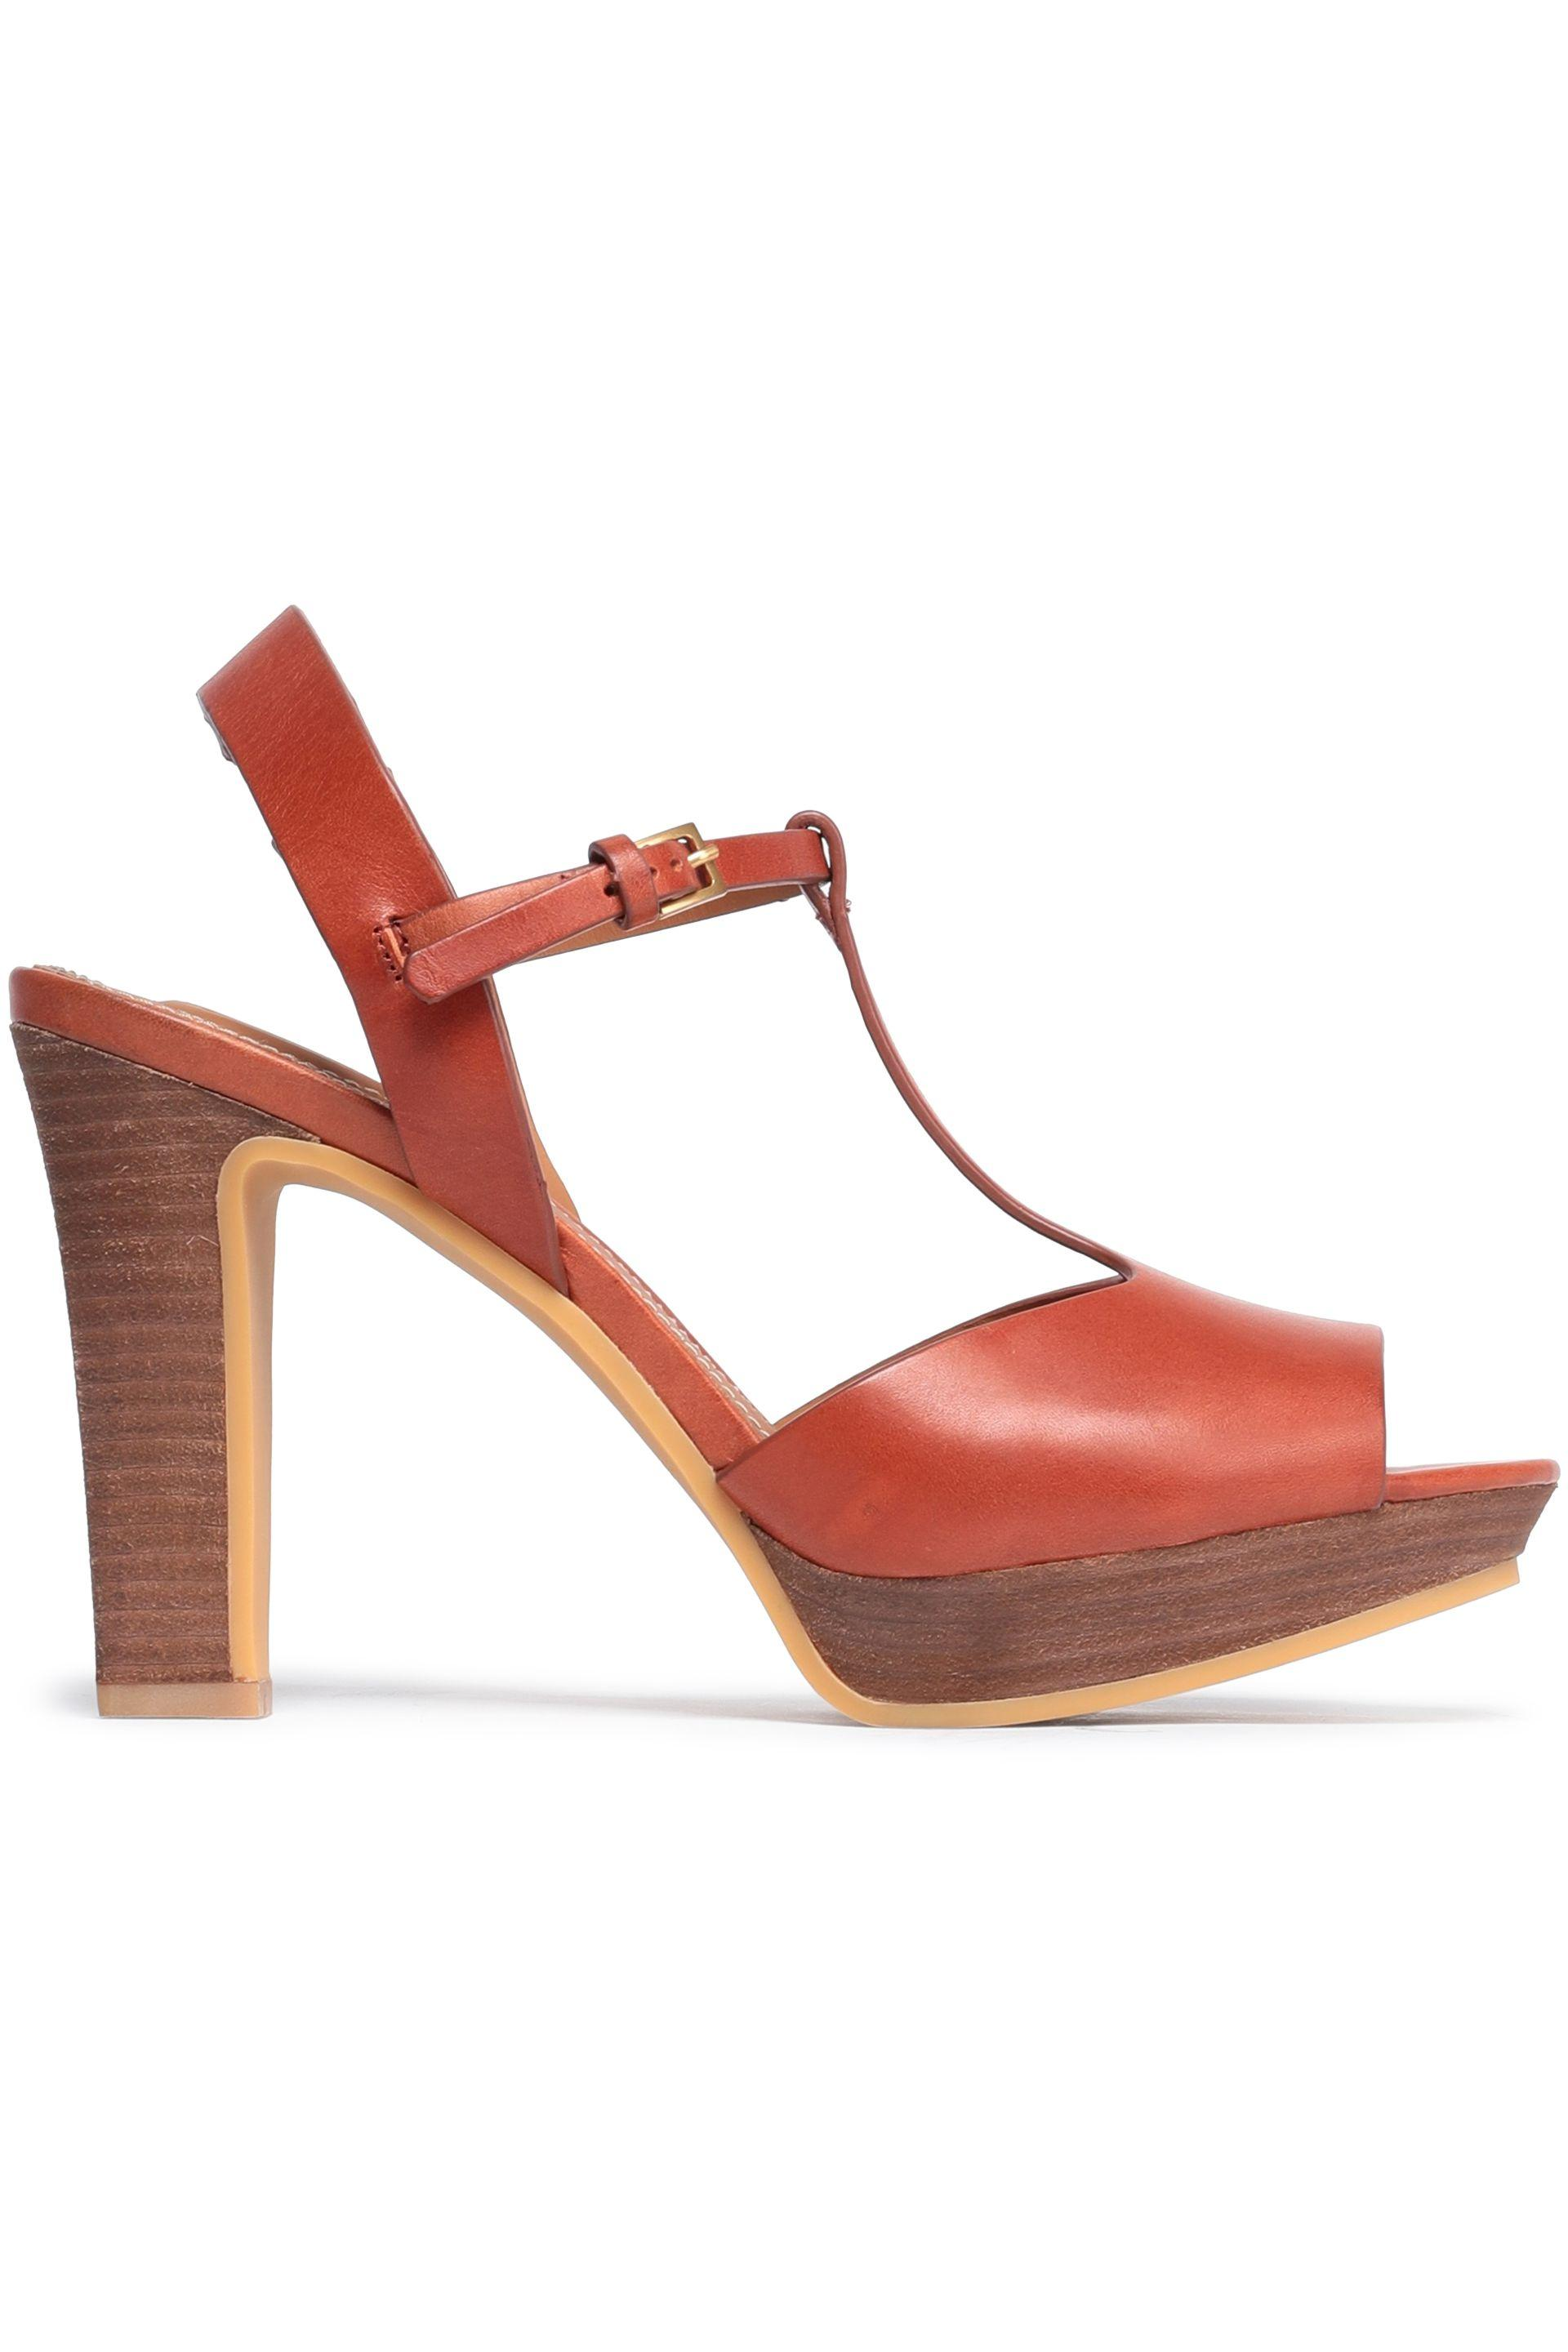 3367053da54 See By Chloé See By Chloé Woman Leather Platform Sandals Tan in ...